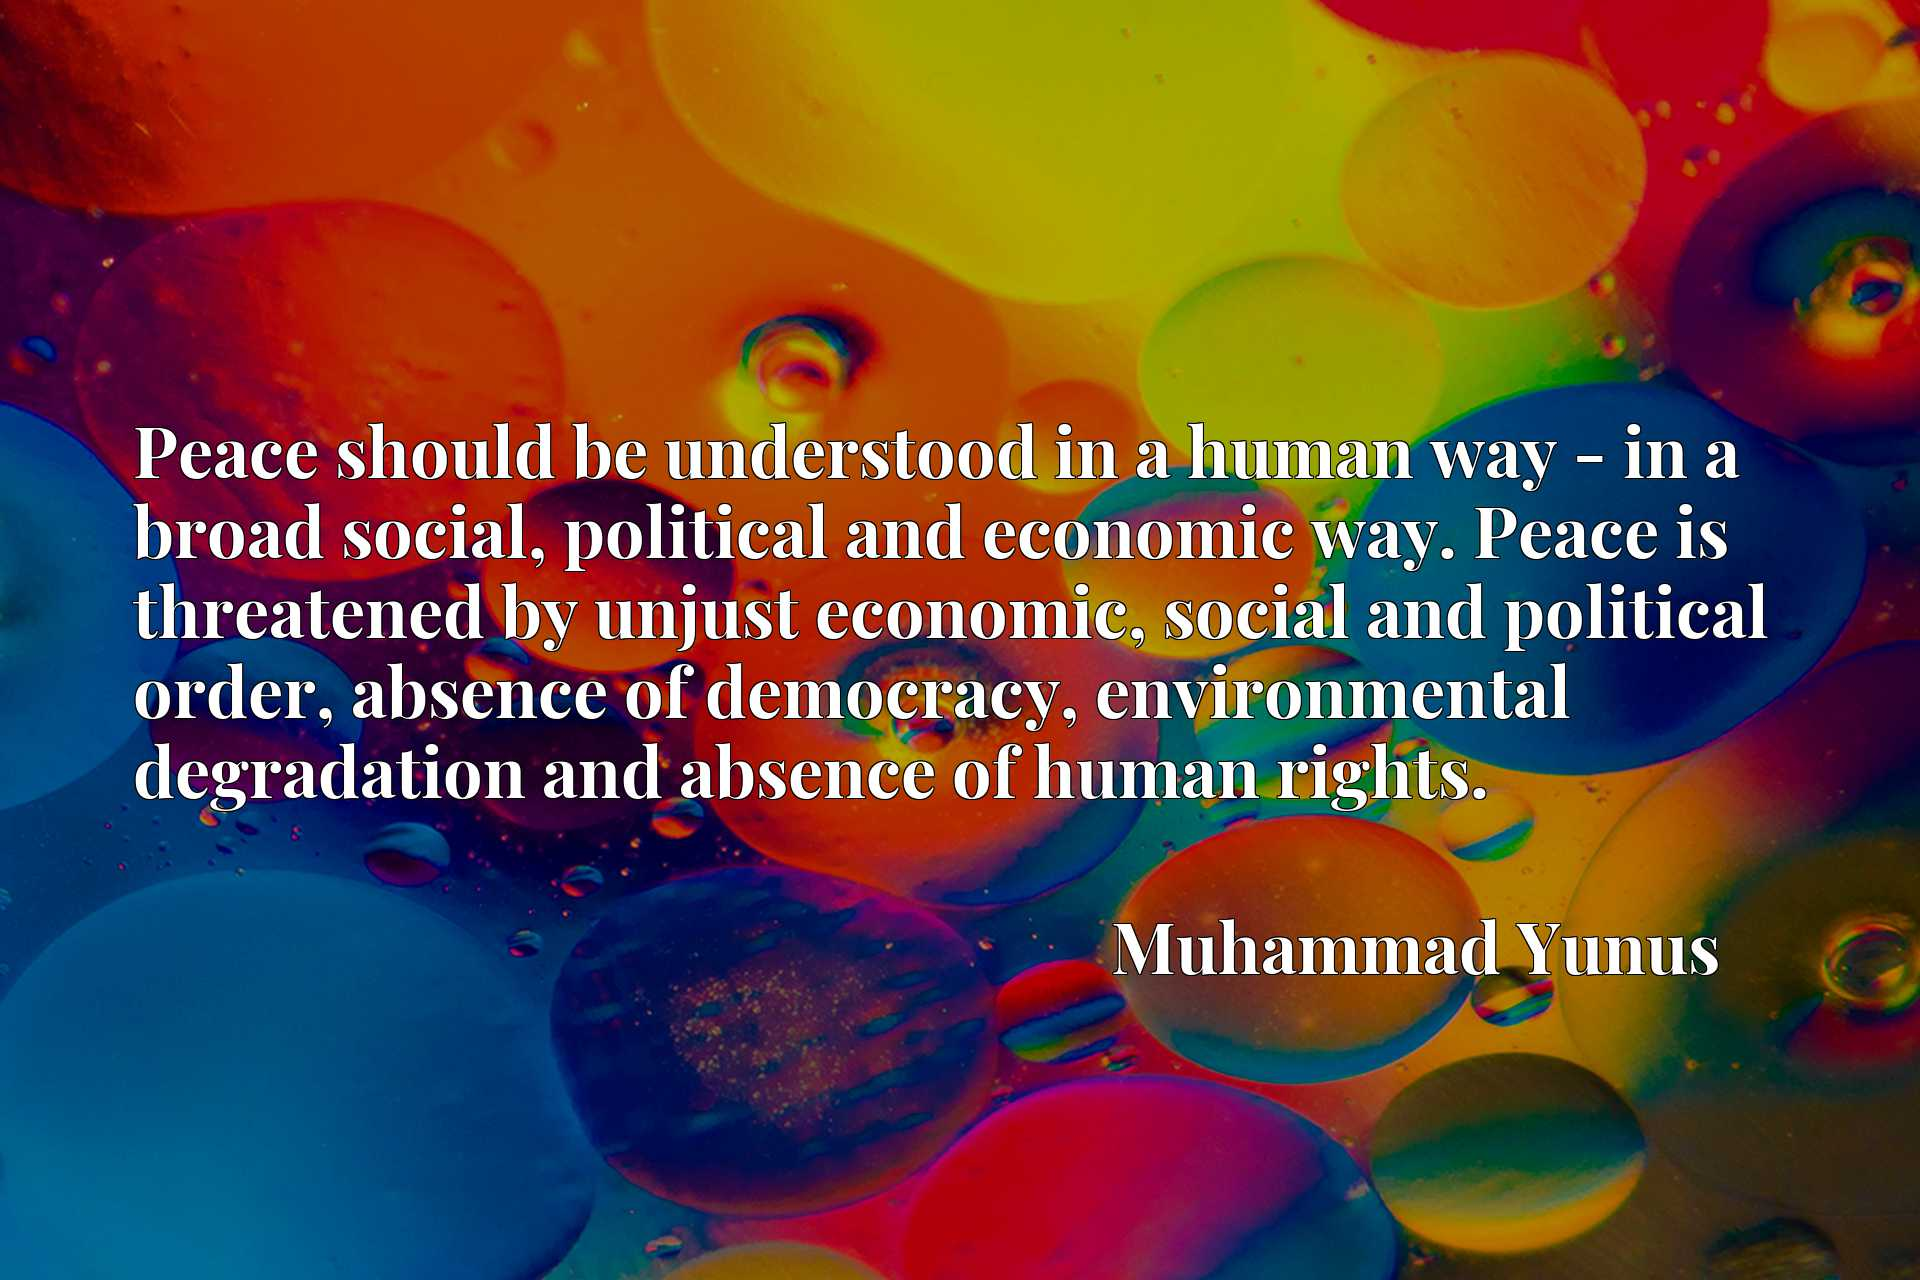 Peace should be understood in a human way - in a broad social, political and economic way. Peace is threatened by unjust economic, social and political order, absence of democracy, environmental degradation and absence of human rights.